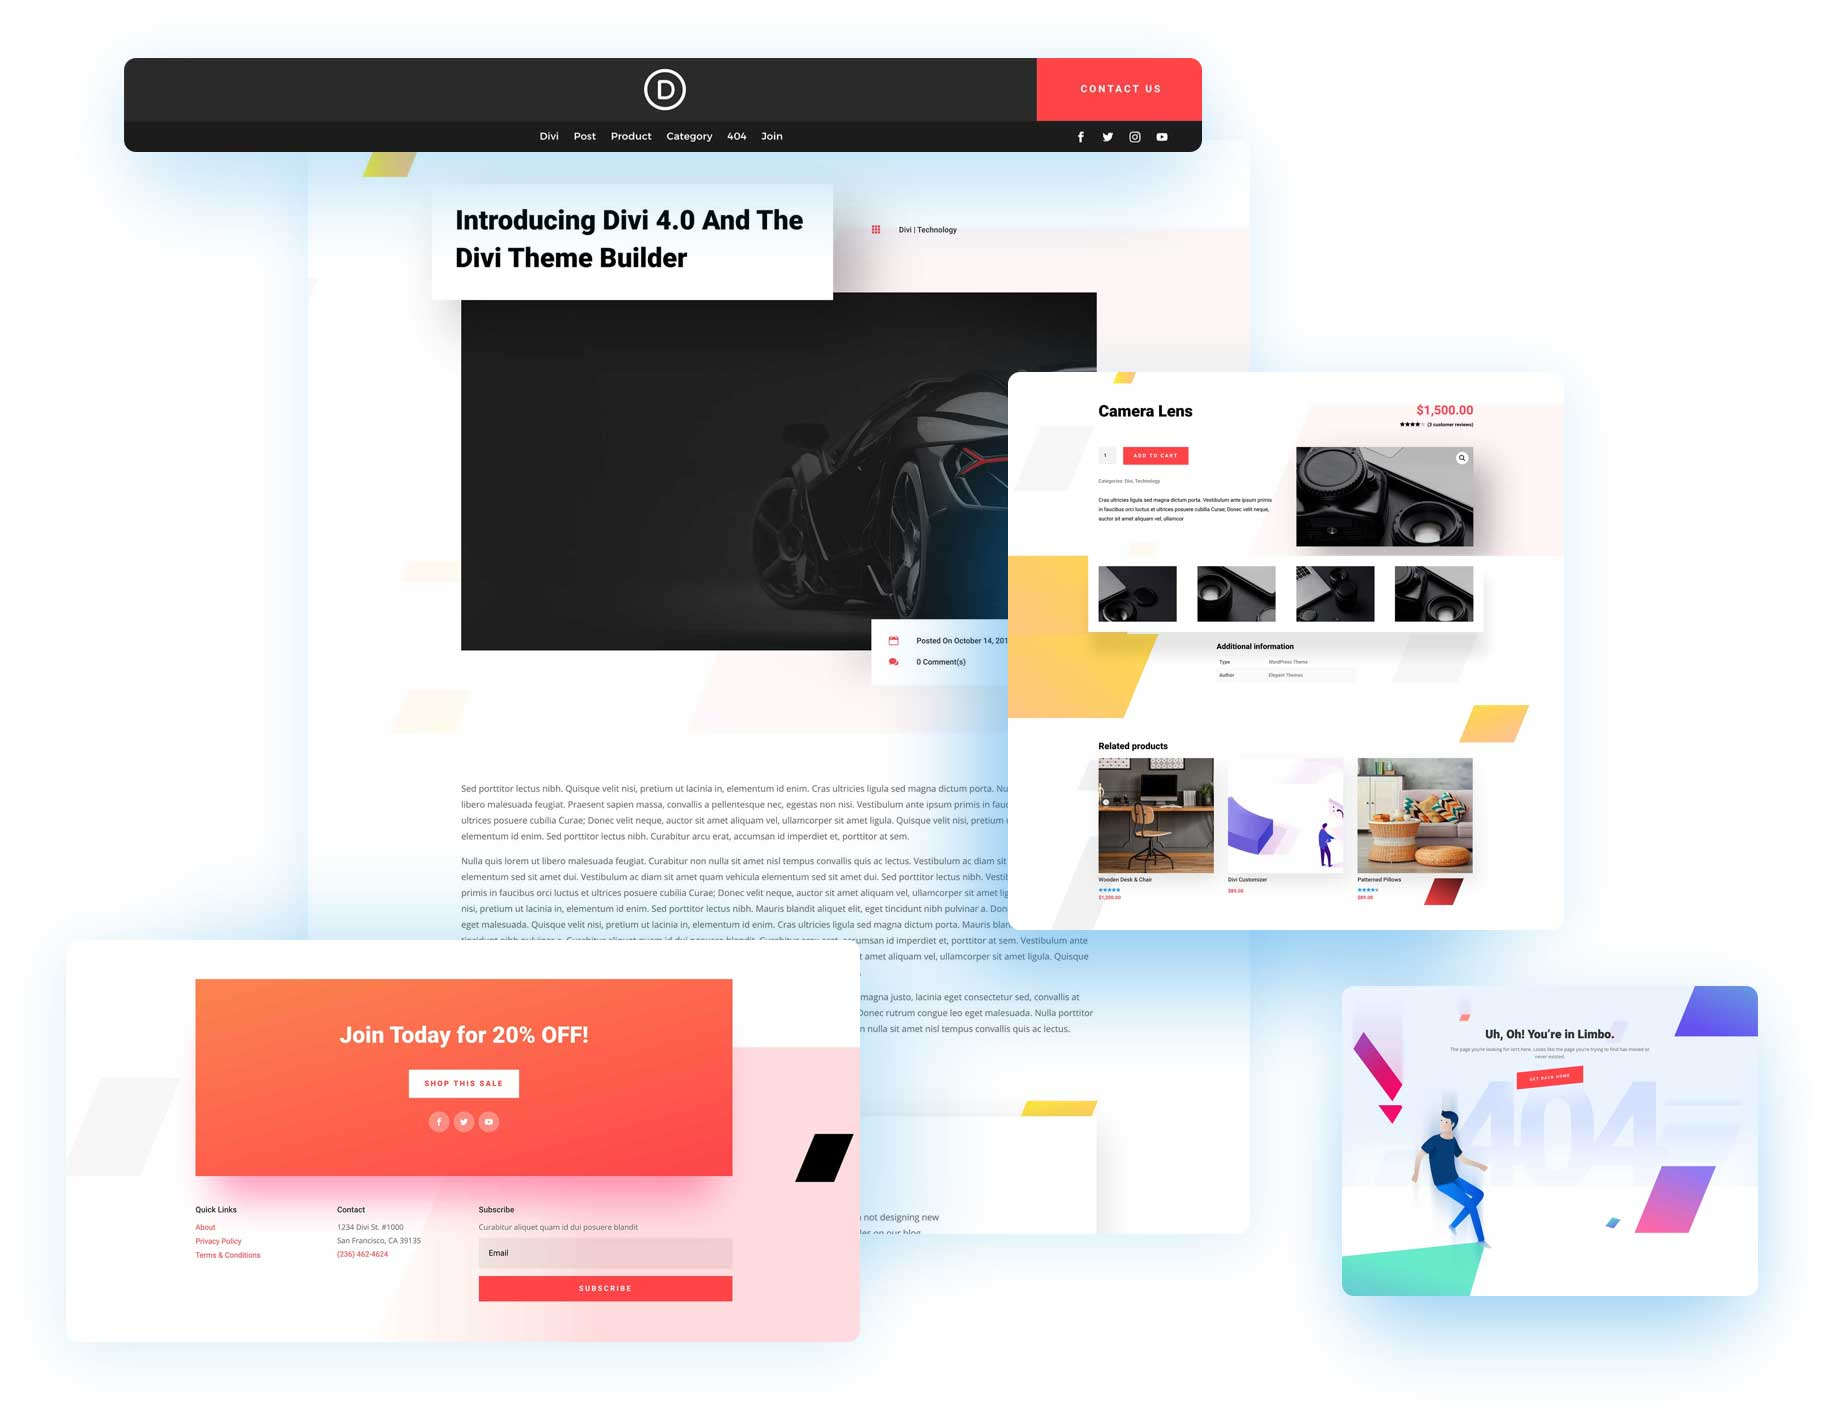 Download the Fourth Free Theme Builder Pack for Divi